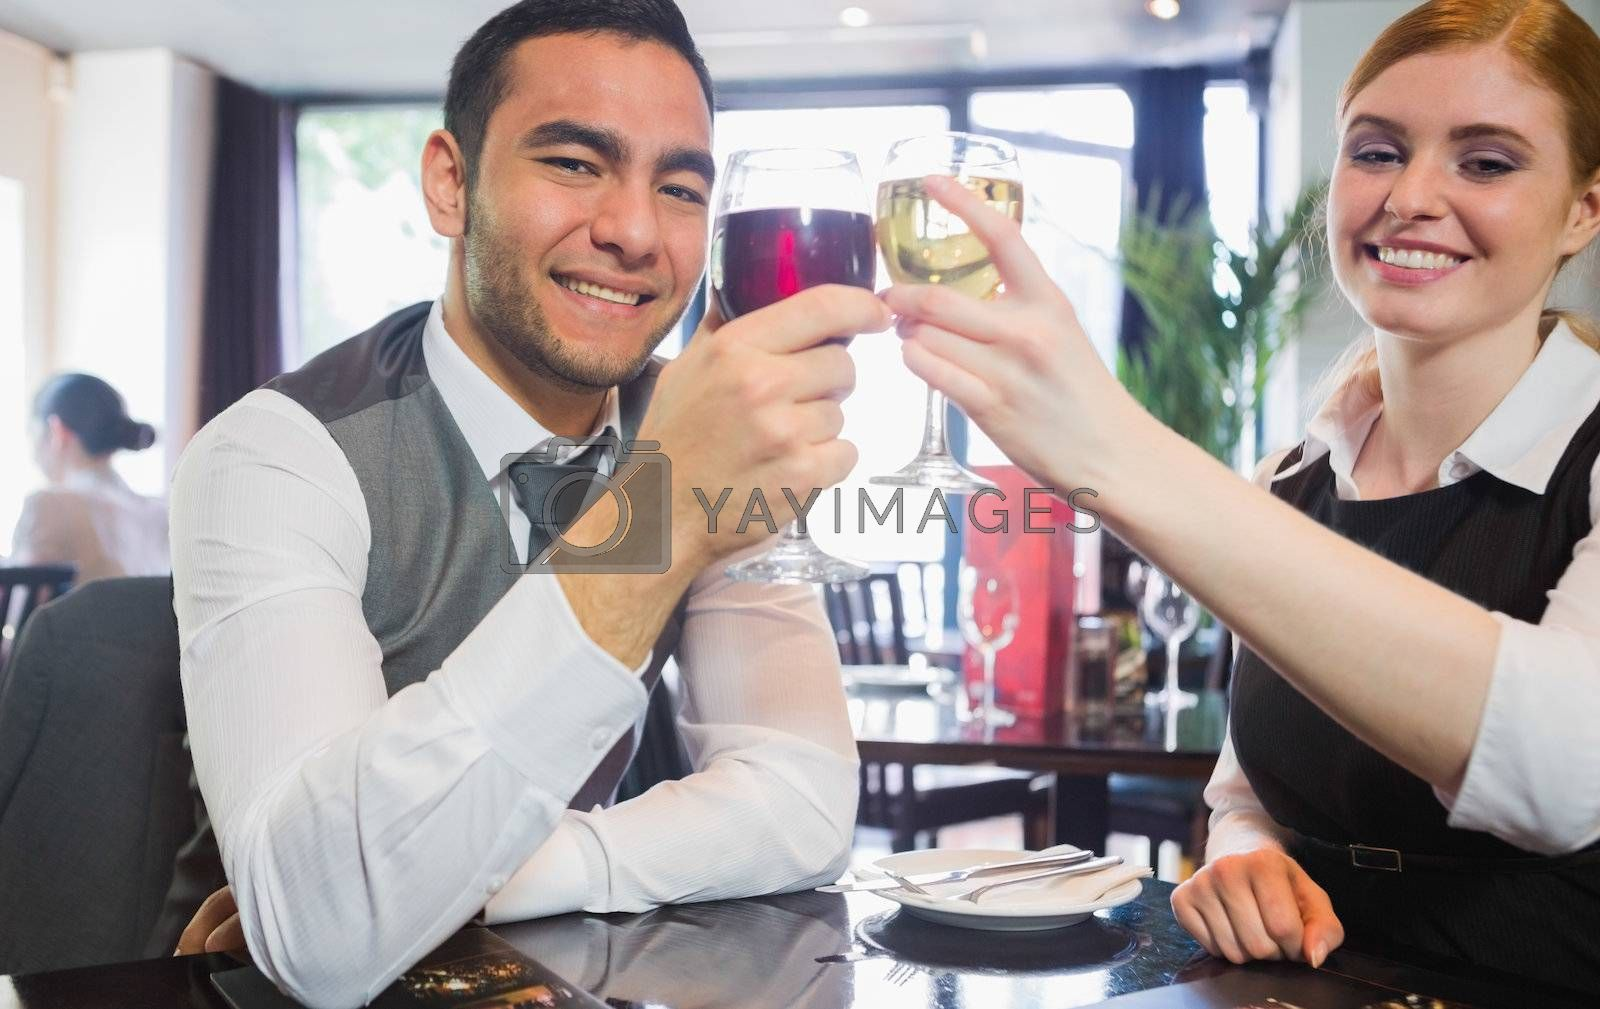 Smiling business partners clinking wine glasses looking at camera in a restaurant